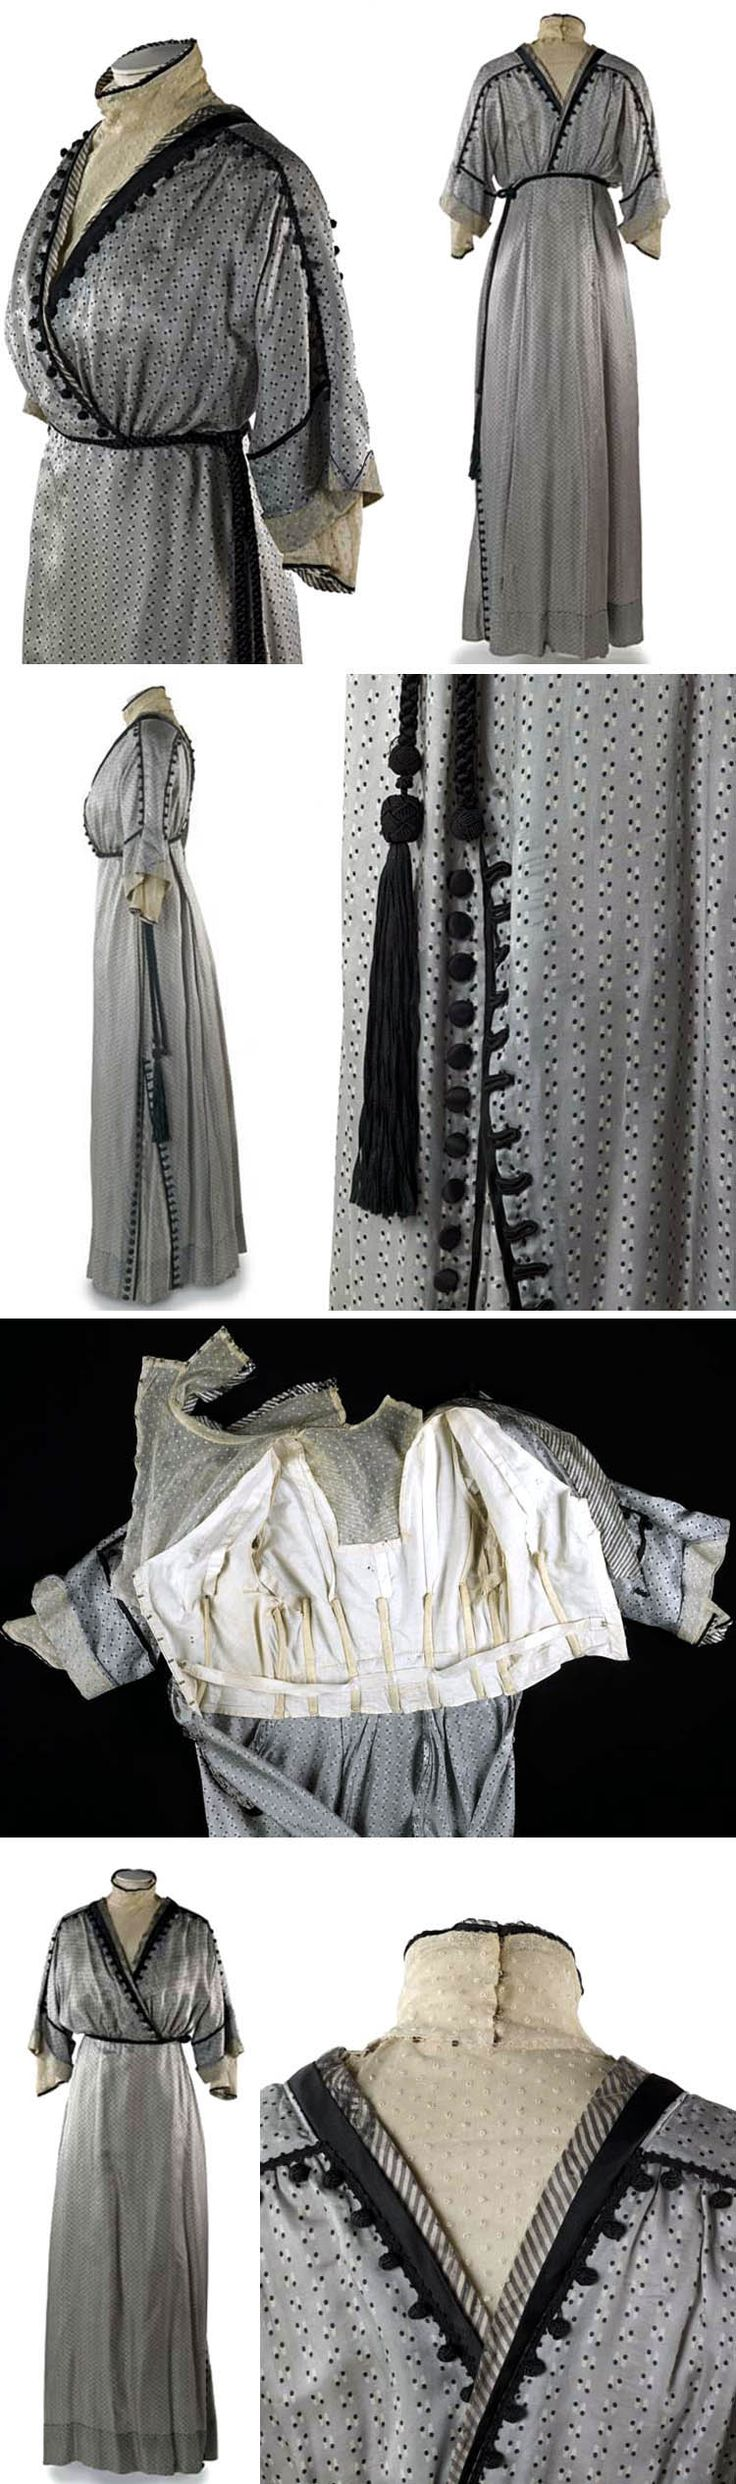 Day dress, ca. 1911-13, in silver-gray silk foulard with tiny striped print of white cigar shapes with black spots at ends. Gilet front is spotted ivory net to match sleeve end & cuffs. Raised waistline defined by black twisted silk cord sash. Left side of skirt has panel of fabric let in, cut cross-grain. Decorative black satin buttons & black silk cord buttonholes stitched on either side. Would have been worn over long, lightly boned corset & princess petticoat. Museum of London